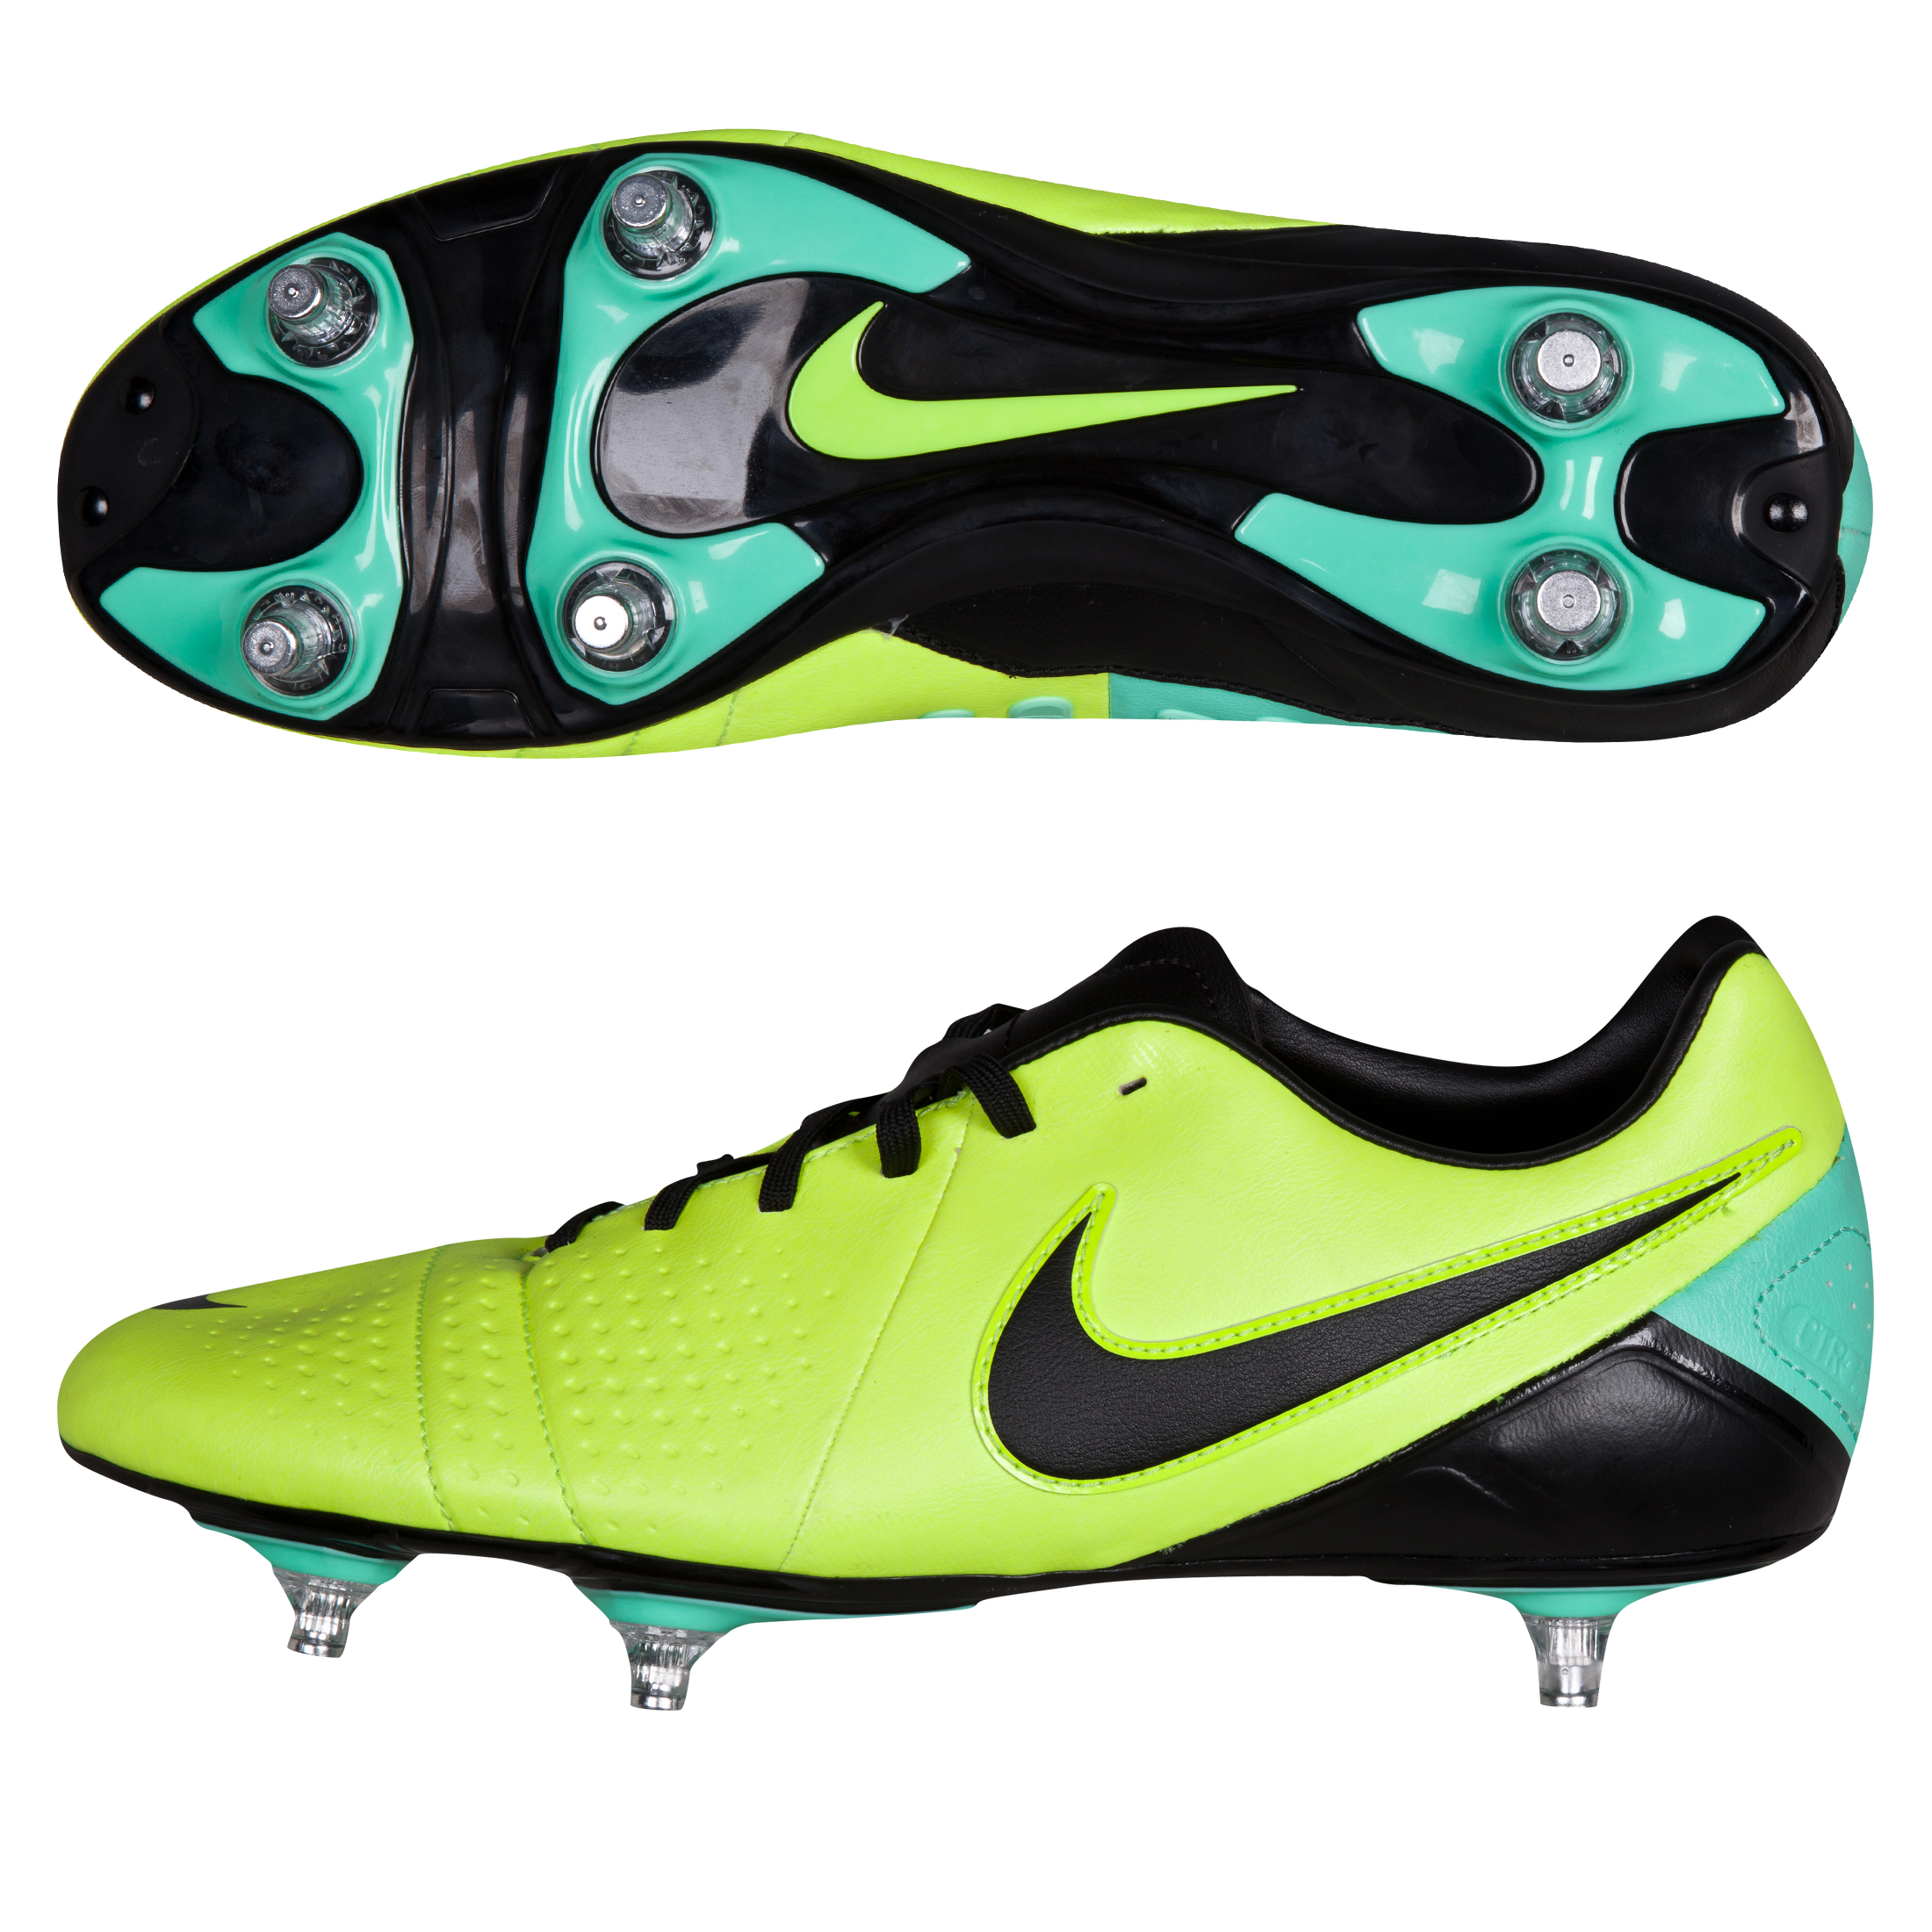 Nike CTR360 Libretto III Soft Ground Football Boots Yellow